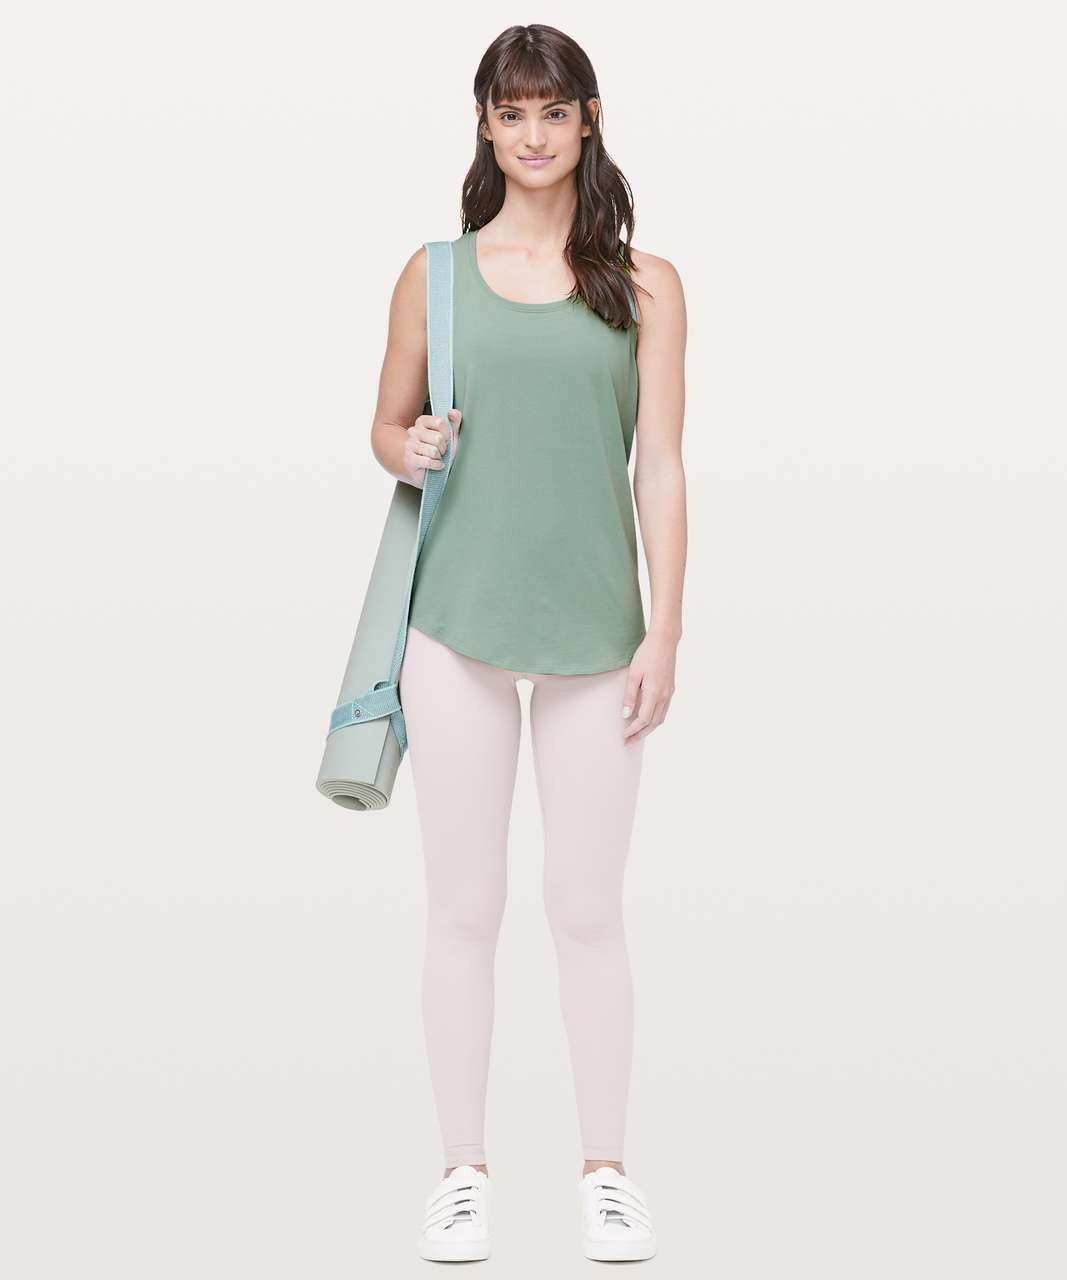 Lululemon Love Tank *Pleated - Palm Court